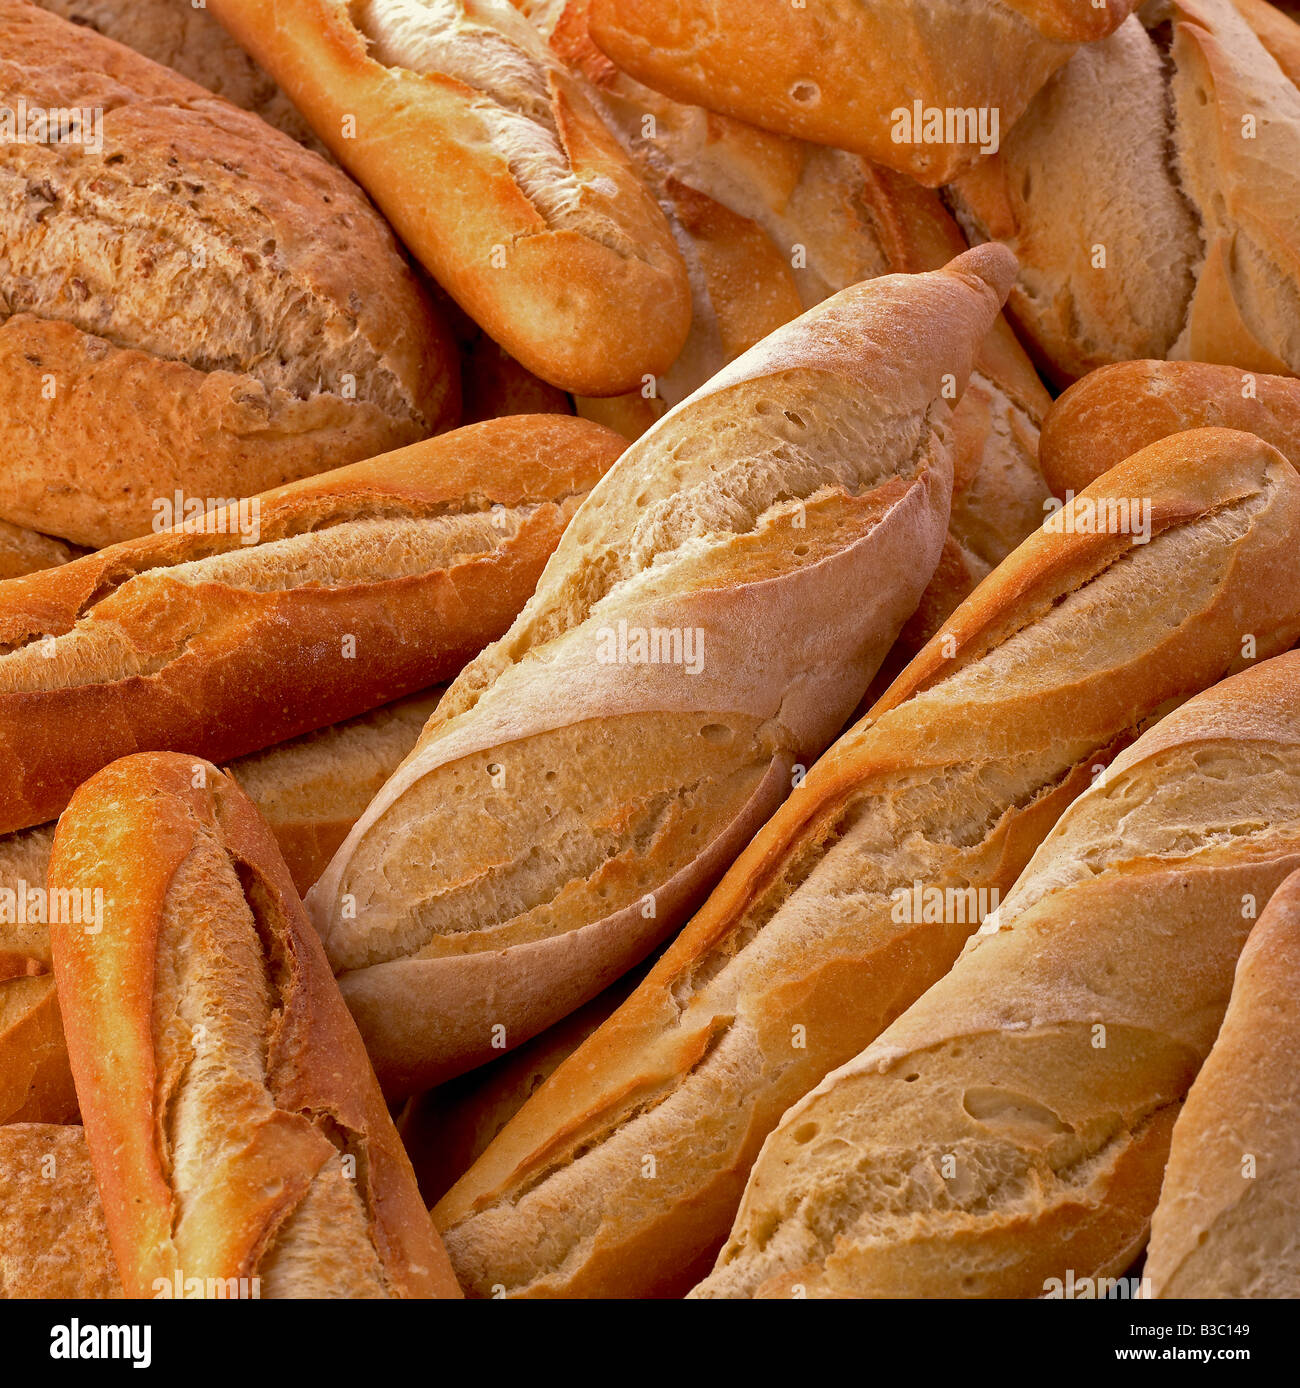 Loaves of rustic bread - Stock Image